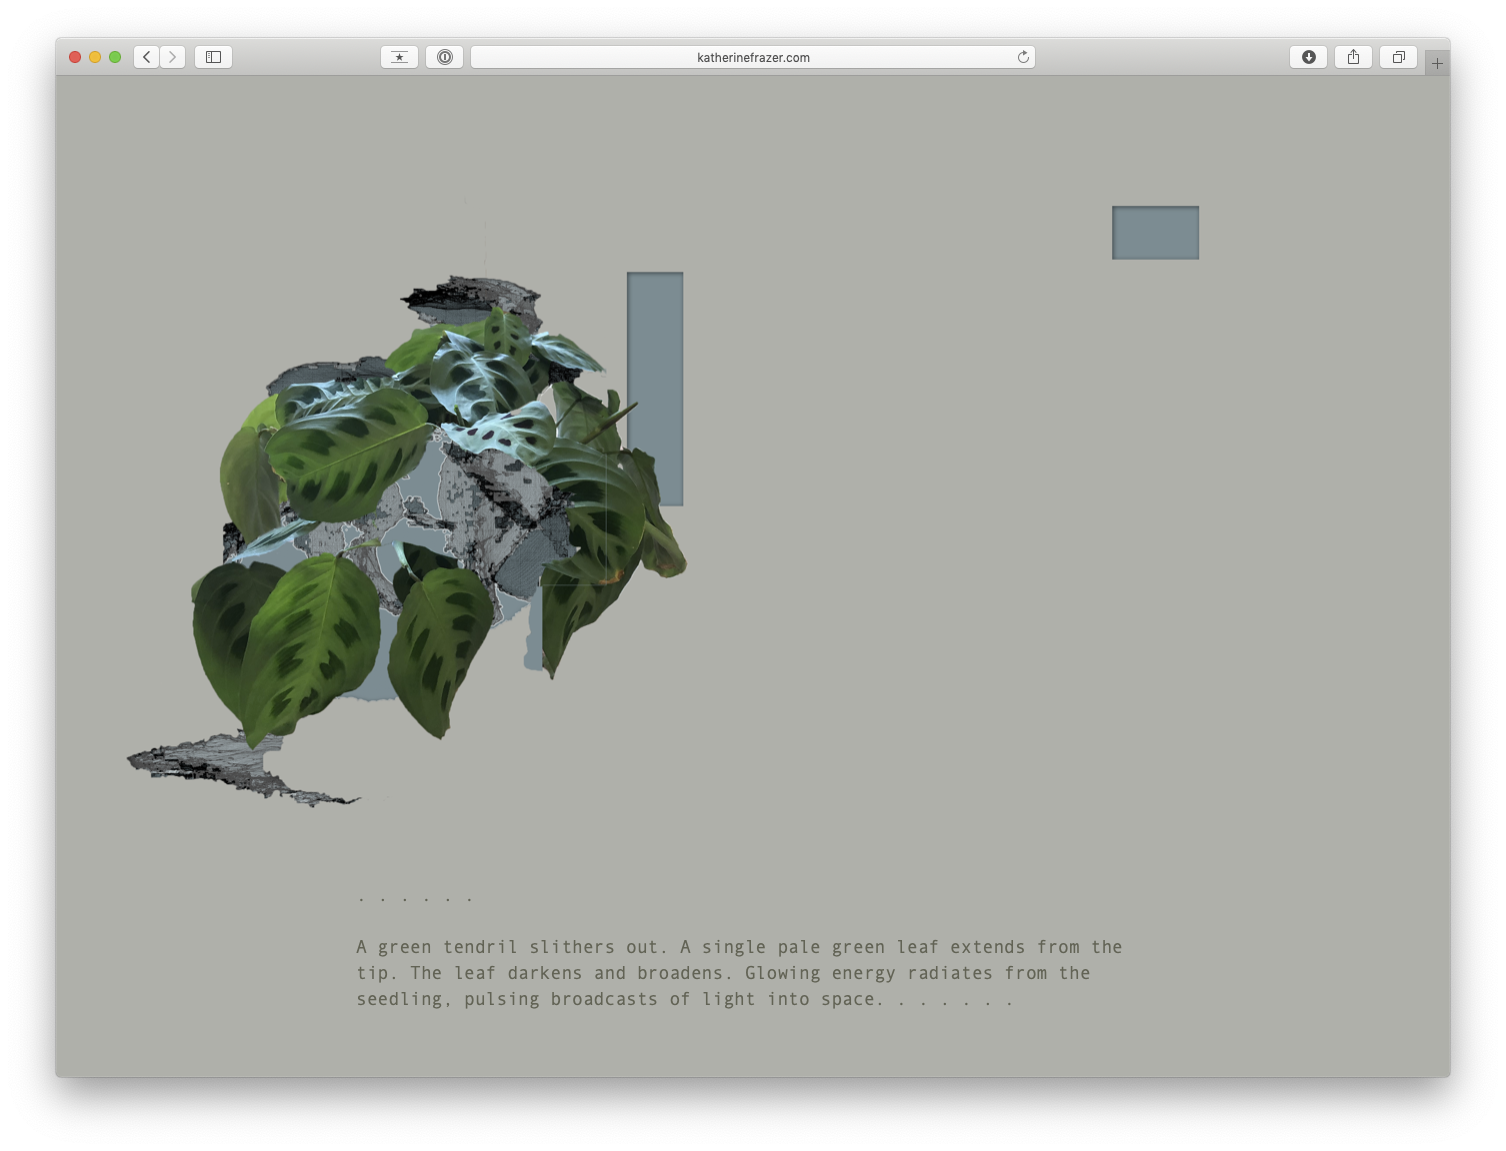 a screenshot of a browser on a simple website. a manipulated image of a plant appears alongside text